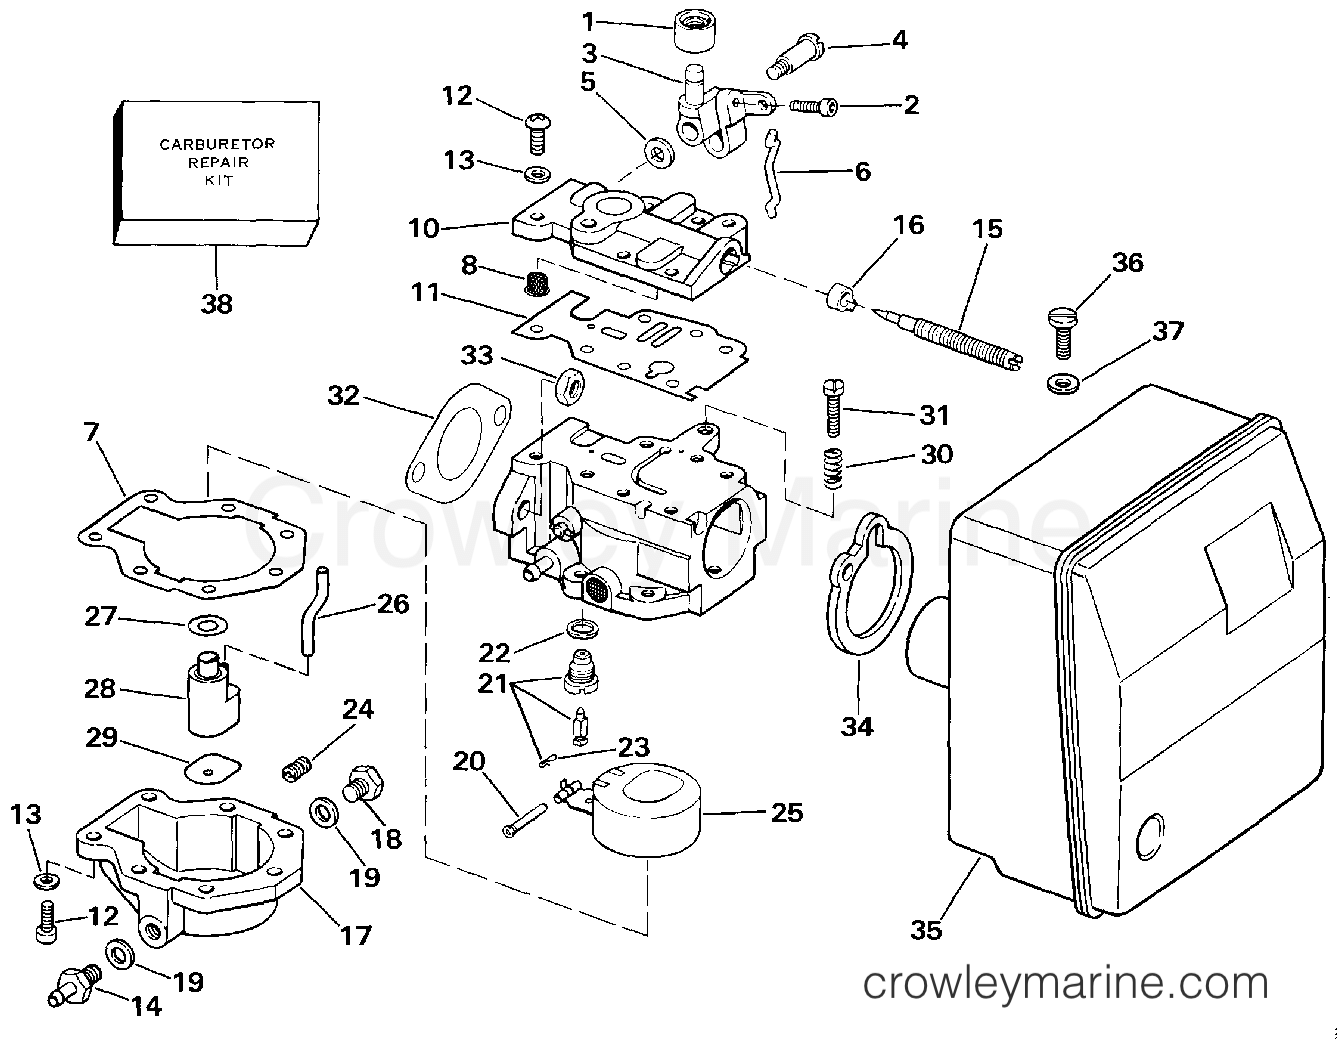 carburetor 1987 evinrude outboards 6 e6rcud crowley marine ICU Trends 1987 evinrude outboards 6 e6rcud carburetor section